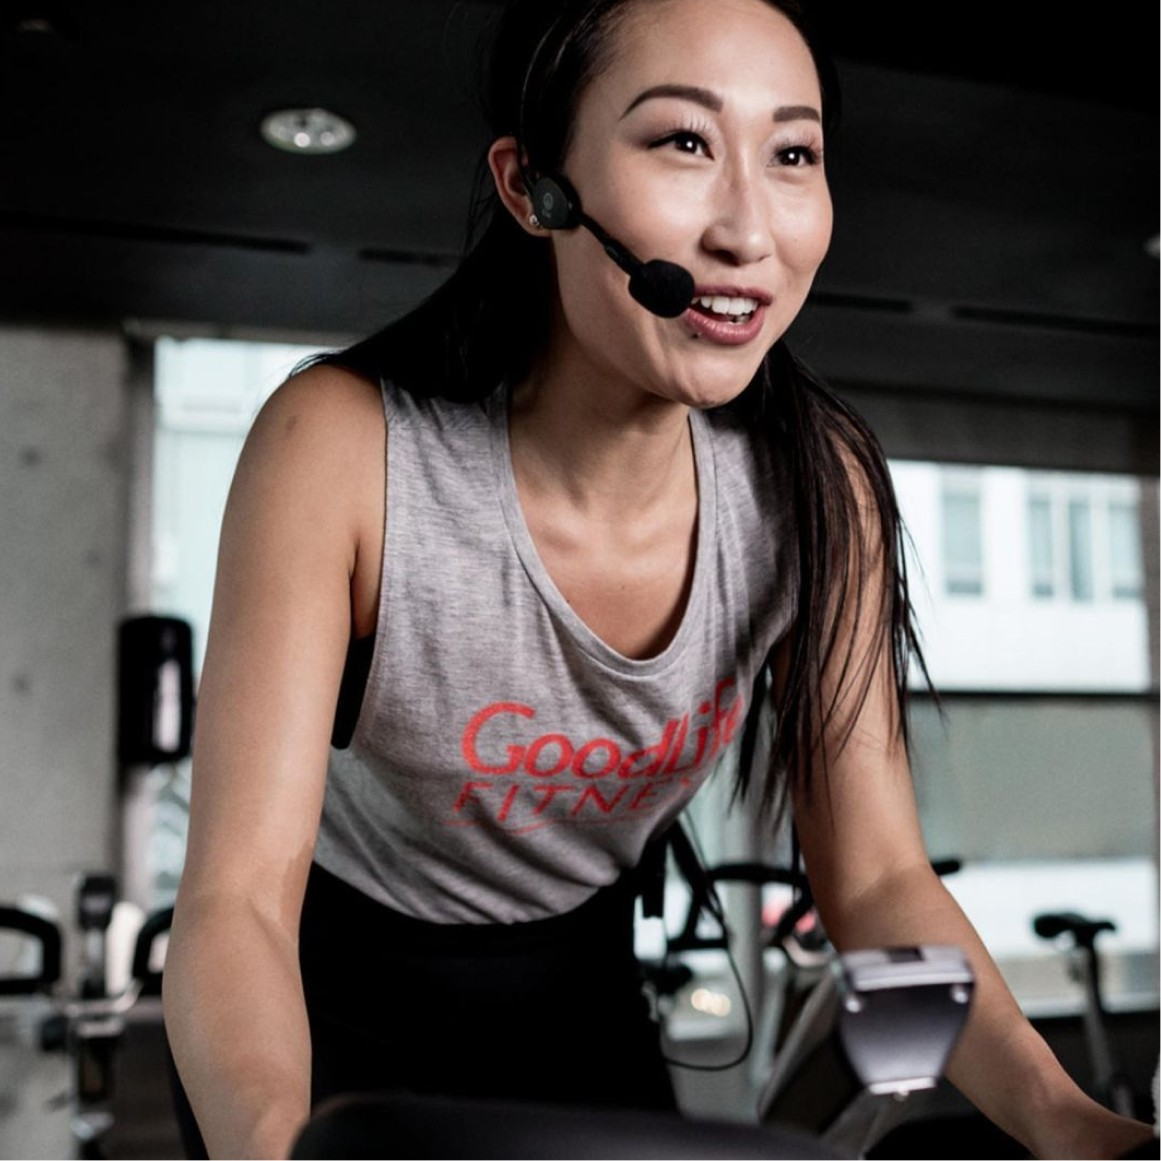 GoodLife Cycling class instructor on a stationary bike with a microphone headset